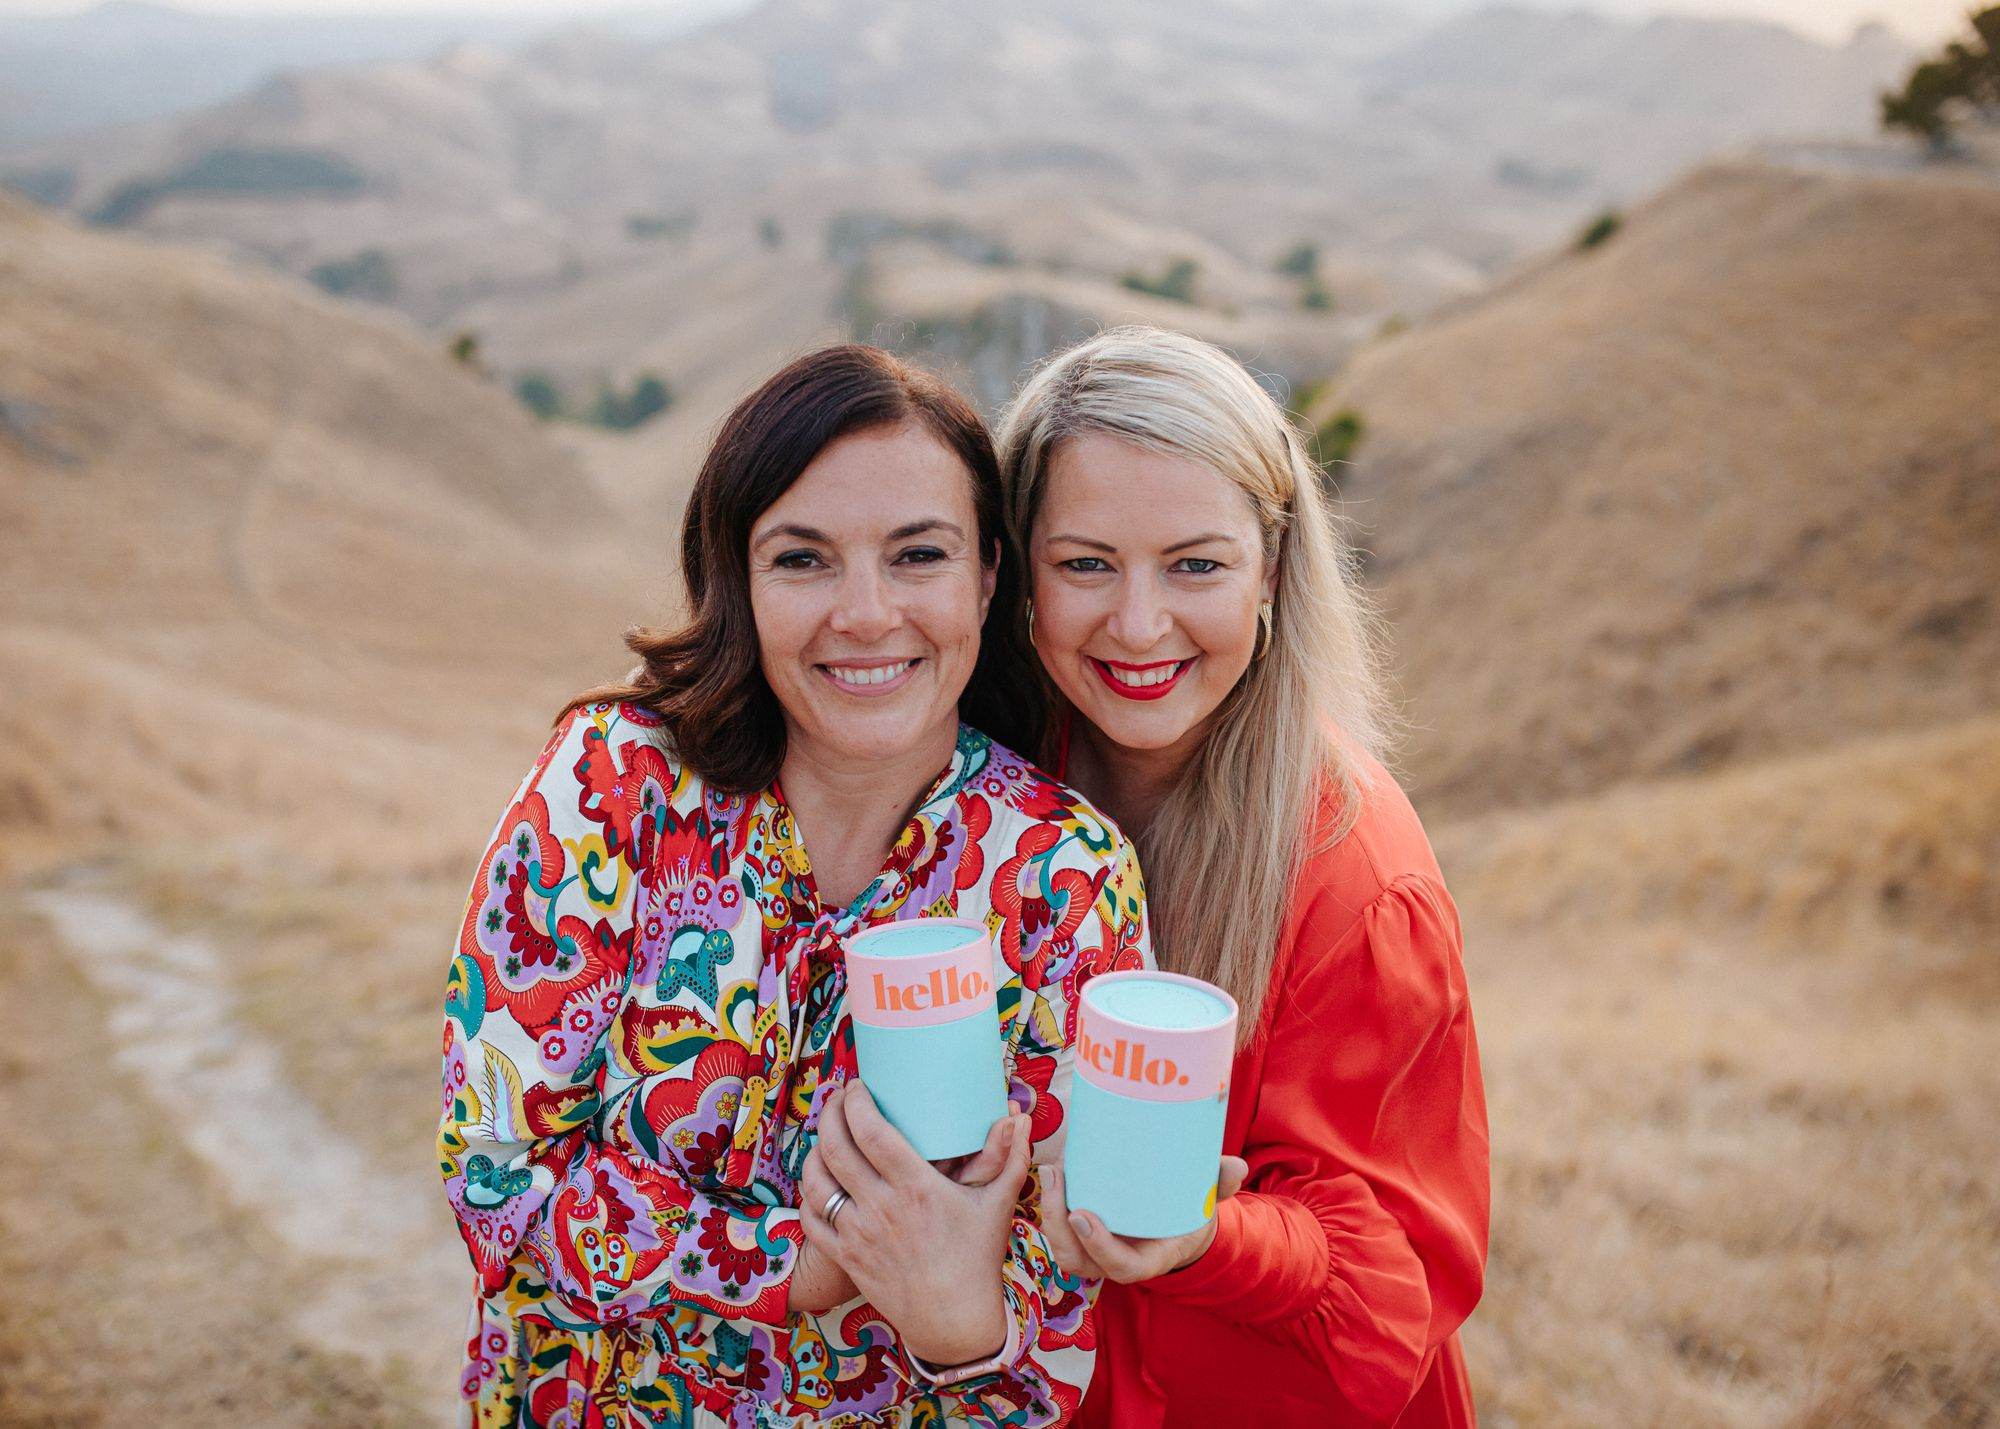 Planet-friendly periods: How Hello Cup is revolutionizing the menstrual care industry, one cup at a time